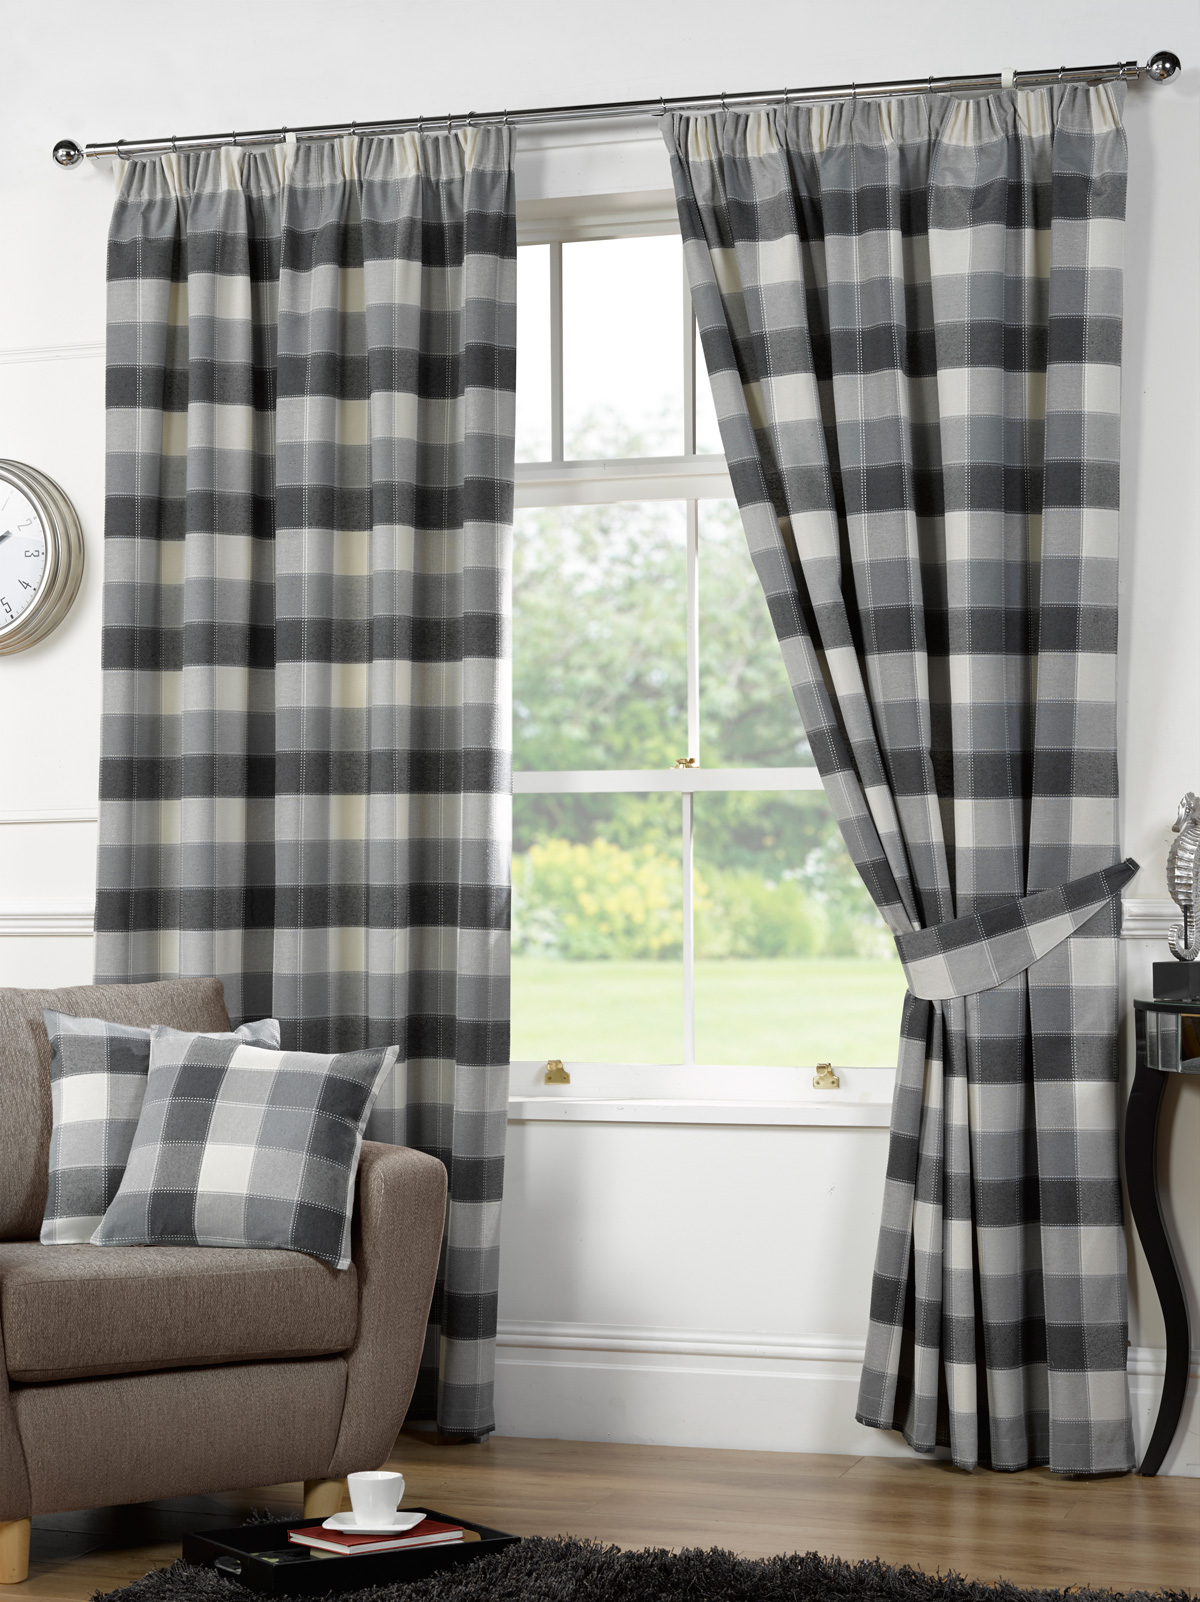 Black and white checked curtains - Black And White Buffalo Check Curtains Black And Green Curtains